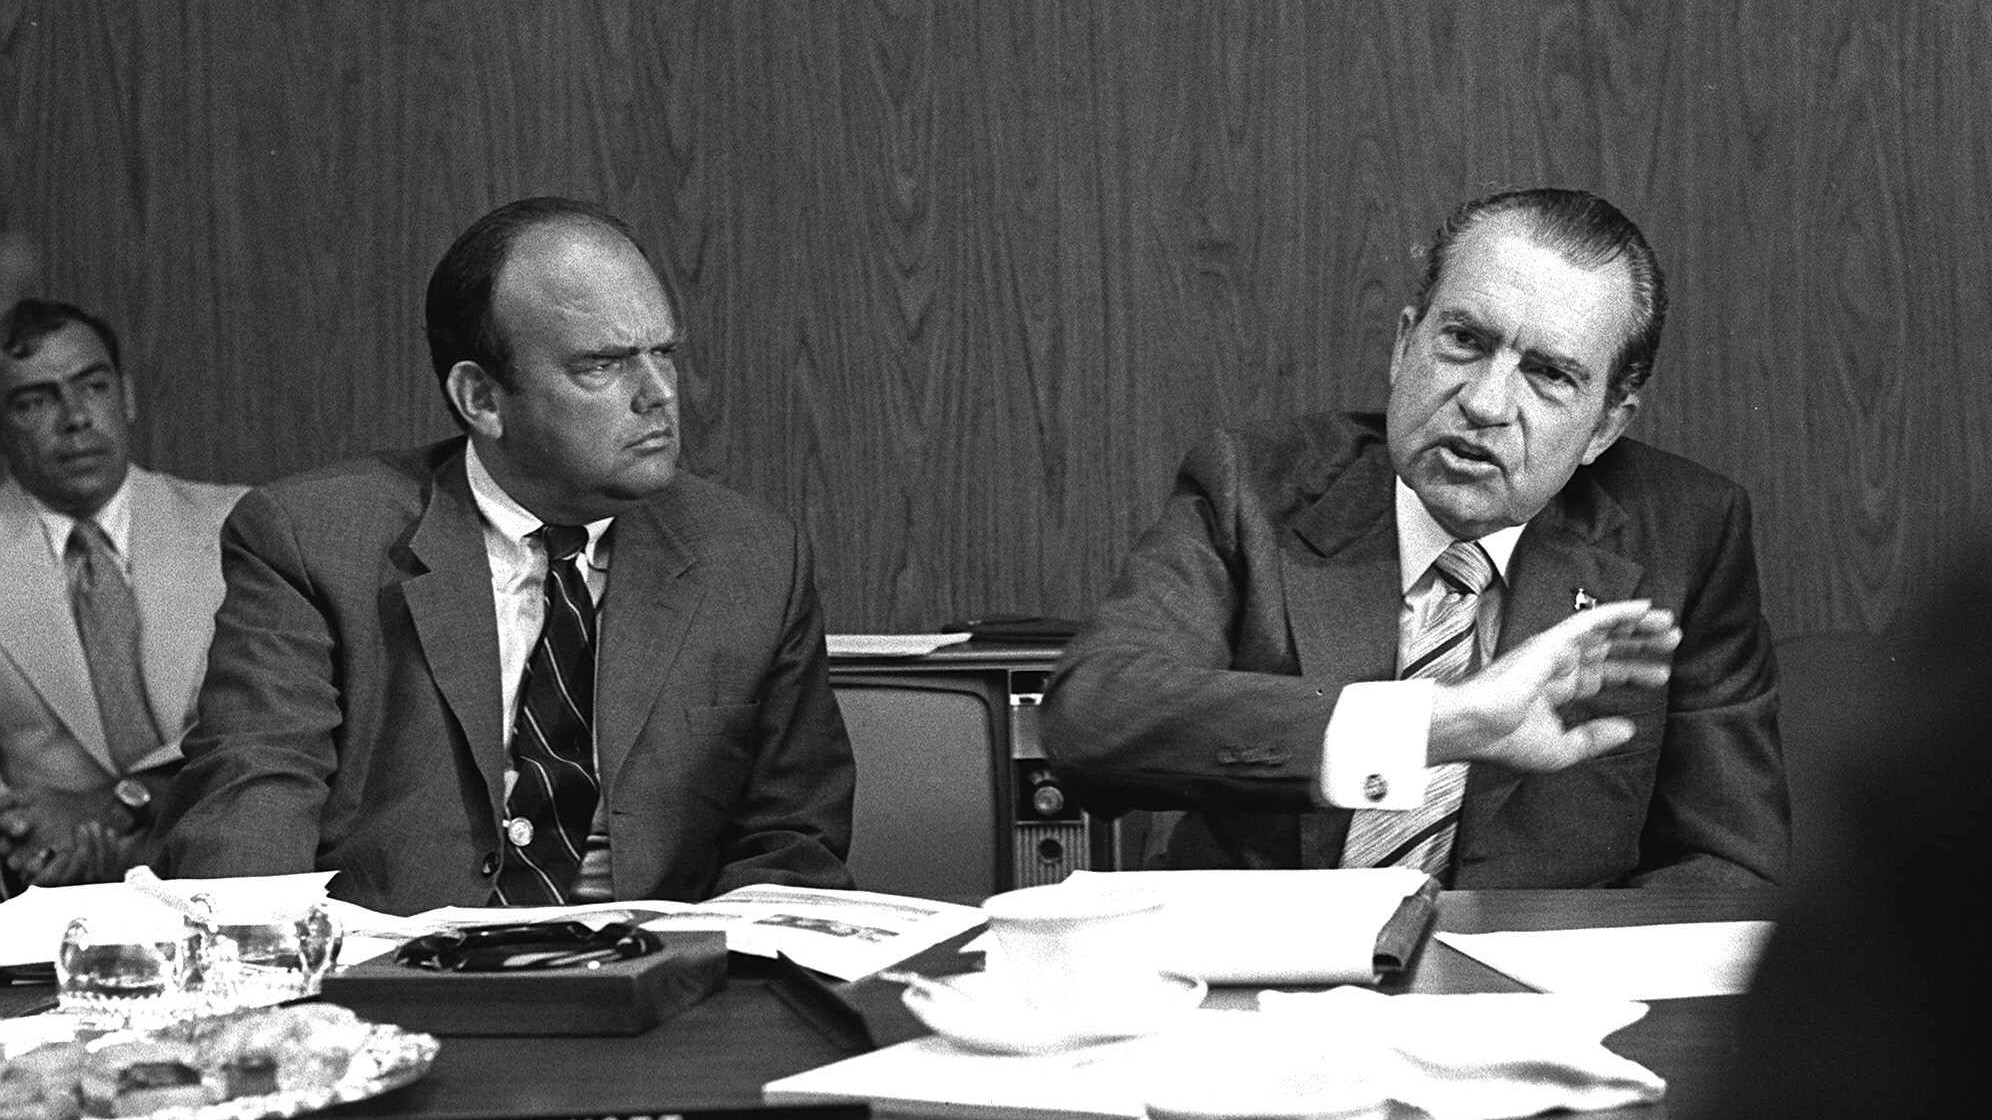 President Nixon, right, discusses improving conditions at a California state park as John D. Ehrlichman, Nixon's domestic affairs adviser, listens in this 1972 photo. Ehrlichman, who was imprisoned for 18 months for his part in the Watergate conspiracy, died Sunday of natural causes at the age of 73.()